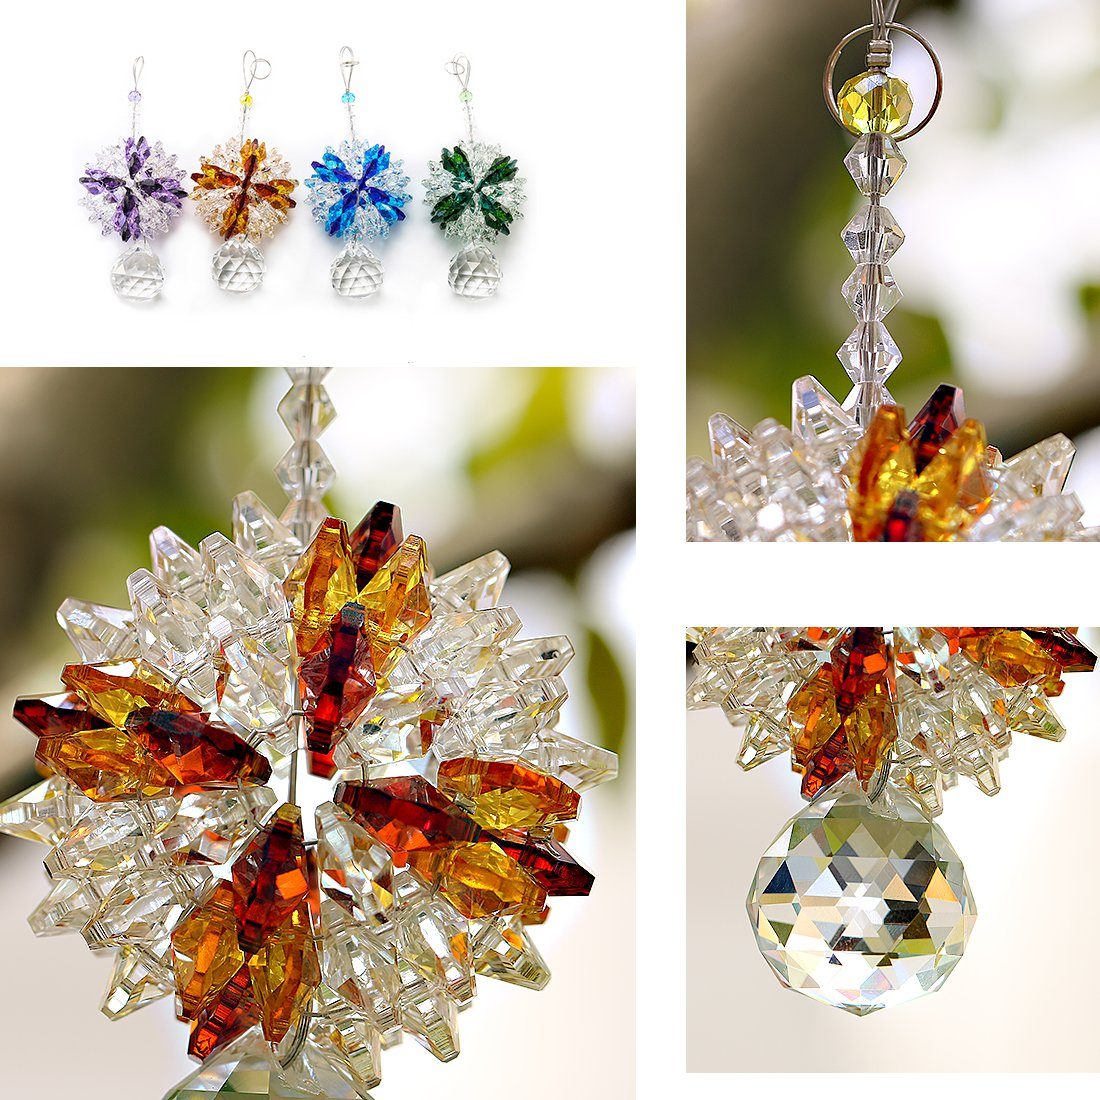 H/&D Fengshui Hanging Suncatcher with Chandelier Crystal Ball Prism Pendant 30mm Amber